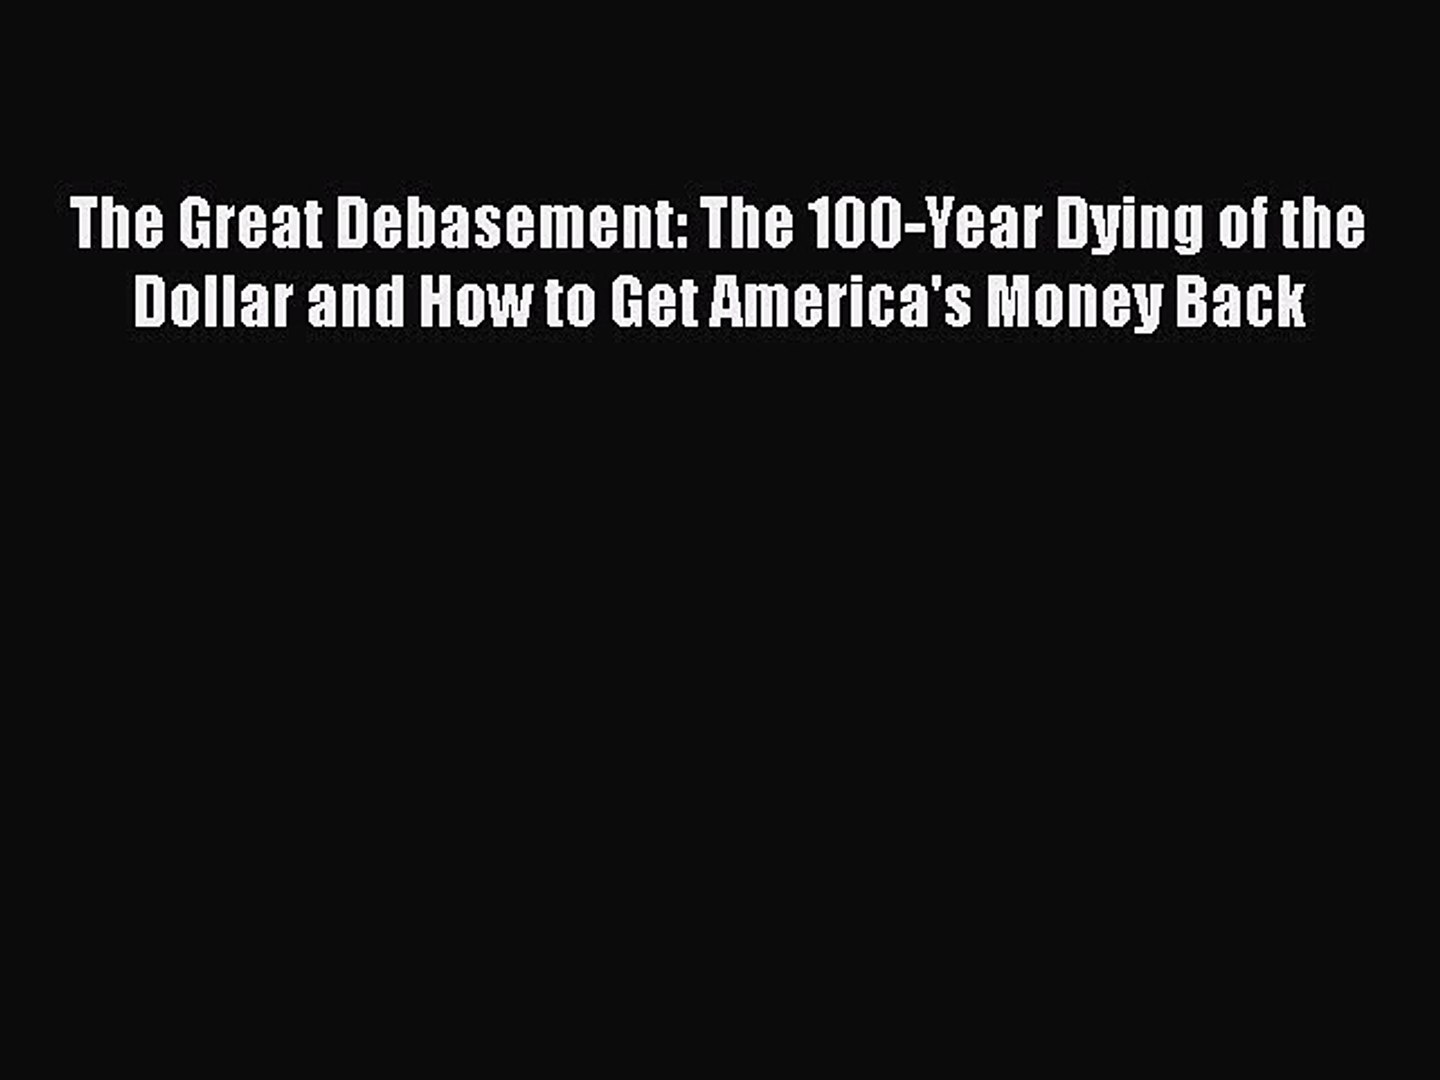 [PDF Download] The Great Debasement: The 100-Year Dying of the Dollar and How to Get America's